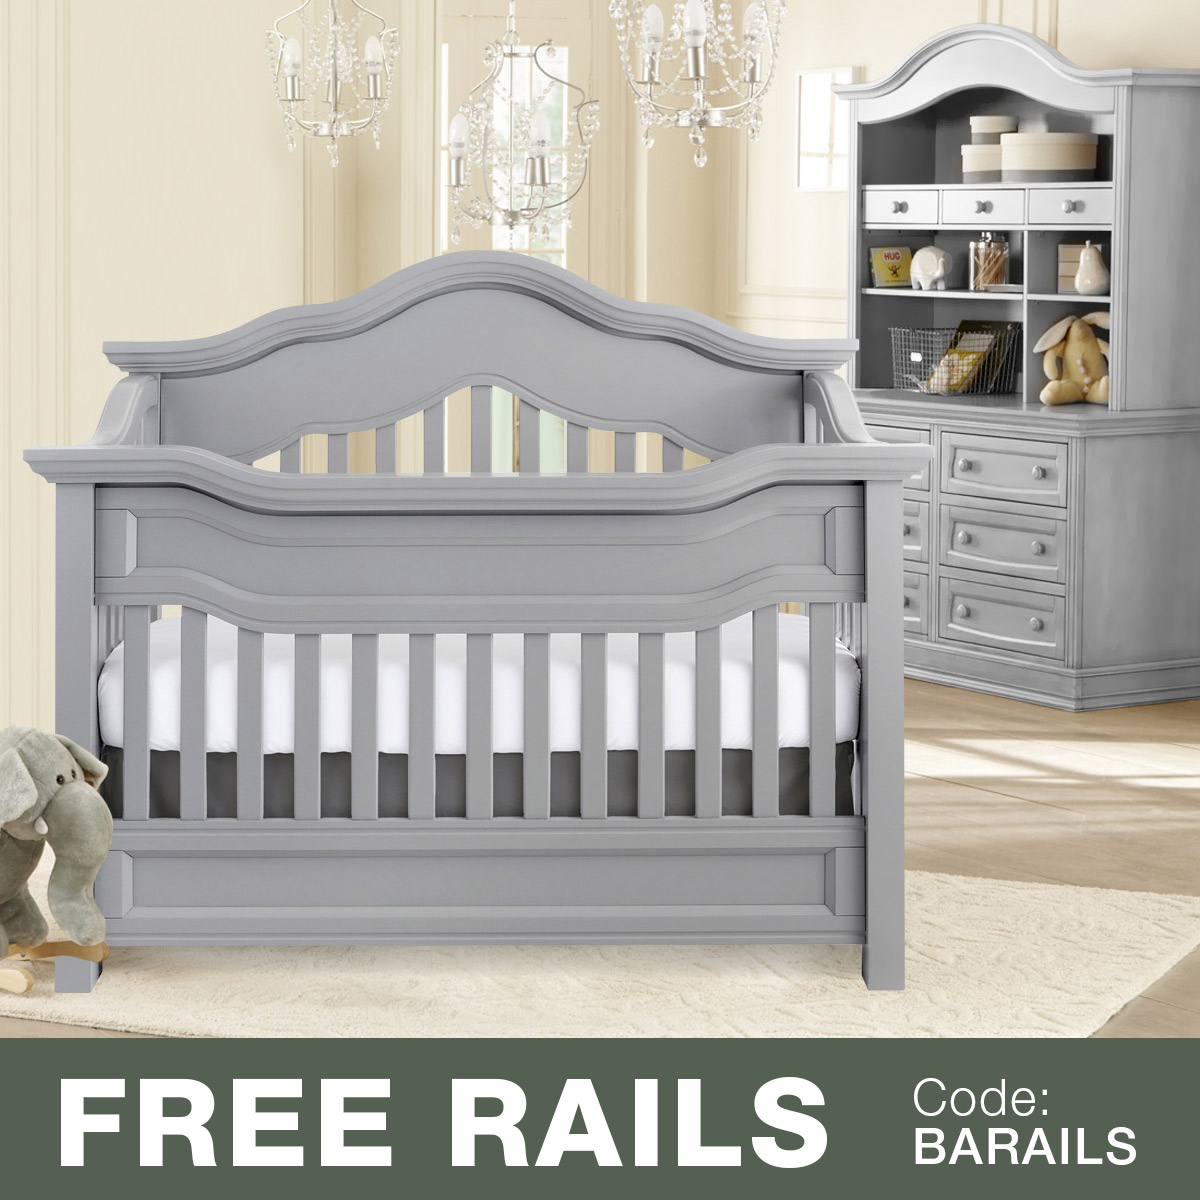 Baby Appleseed 3 Piece Nursery Set   Millbury 3 In 1 Convertible Crib,  Davenport Double Dresser And Hutch In Slate FREE SHIPPING